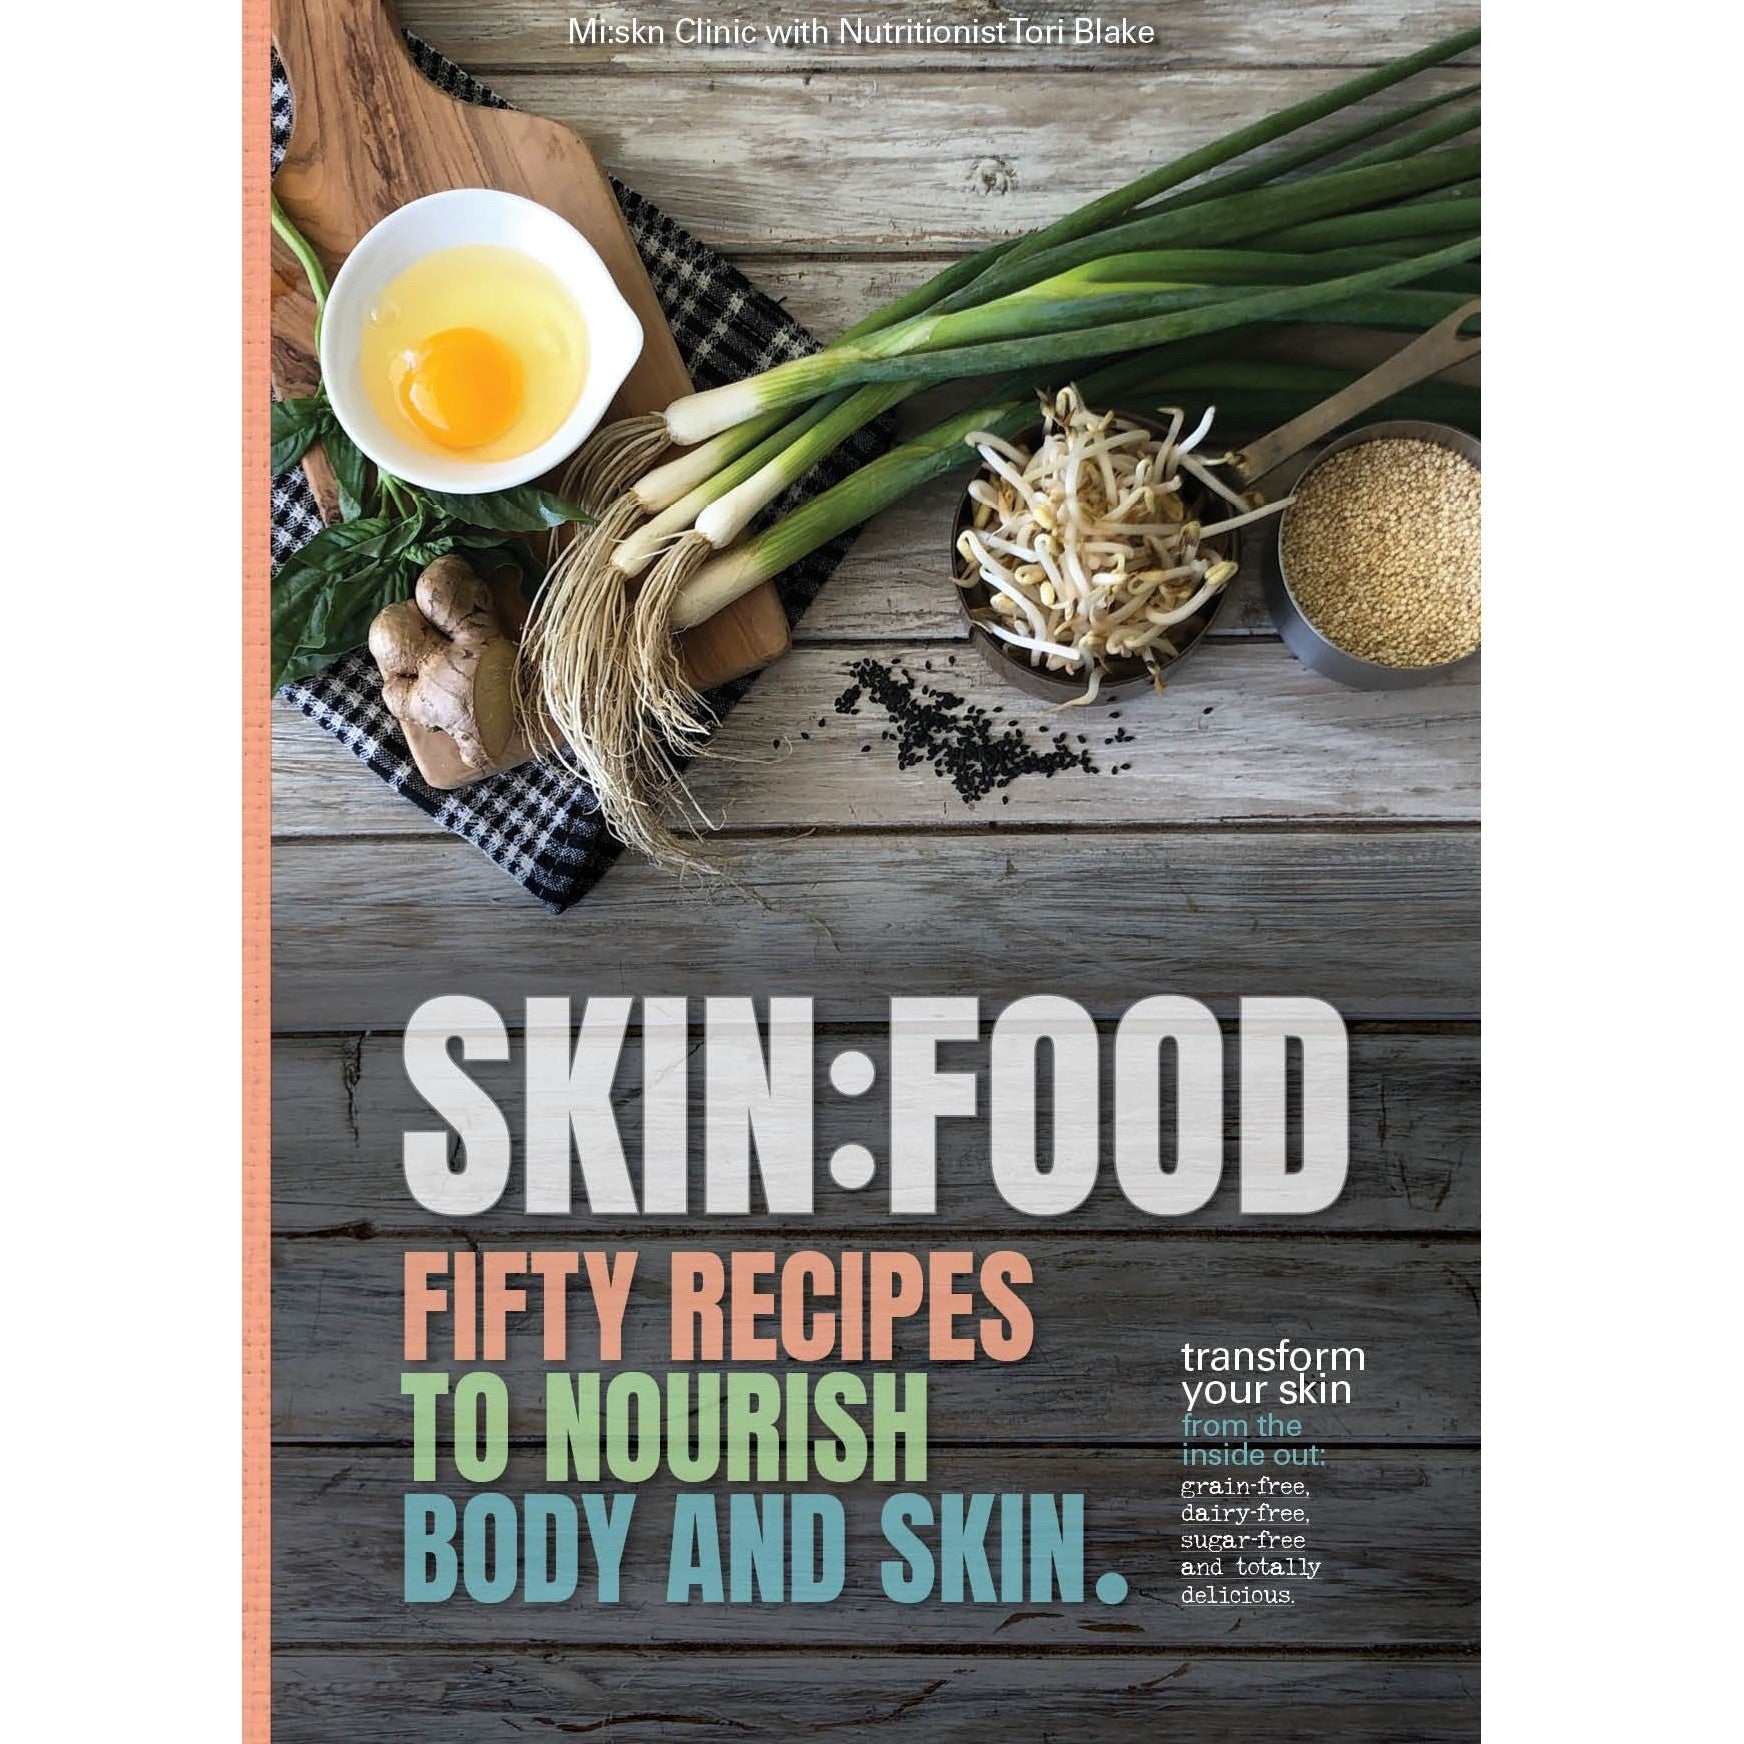 SKIN:FOOD BOOK - PRINT COPY